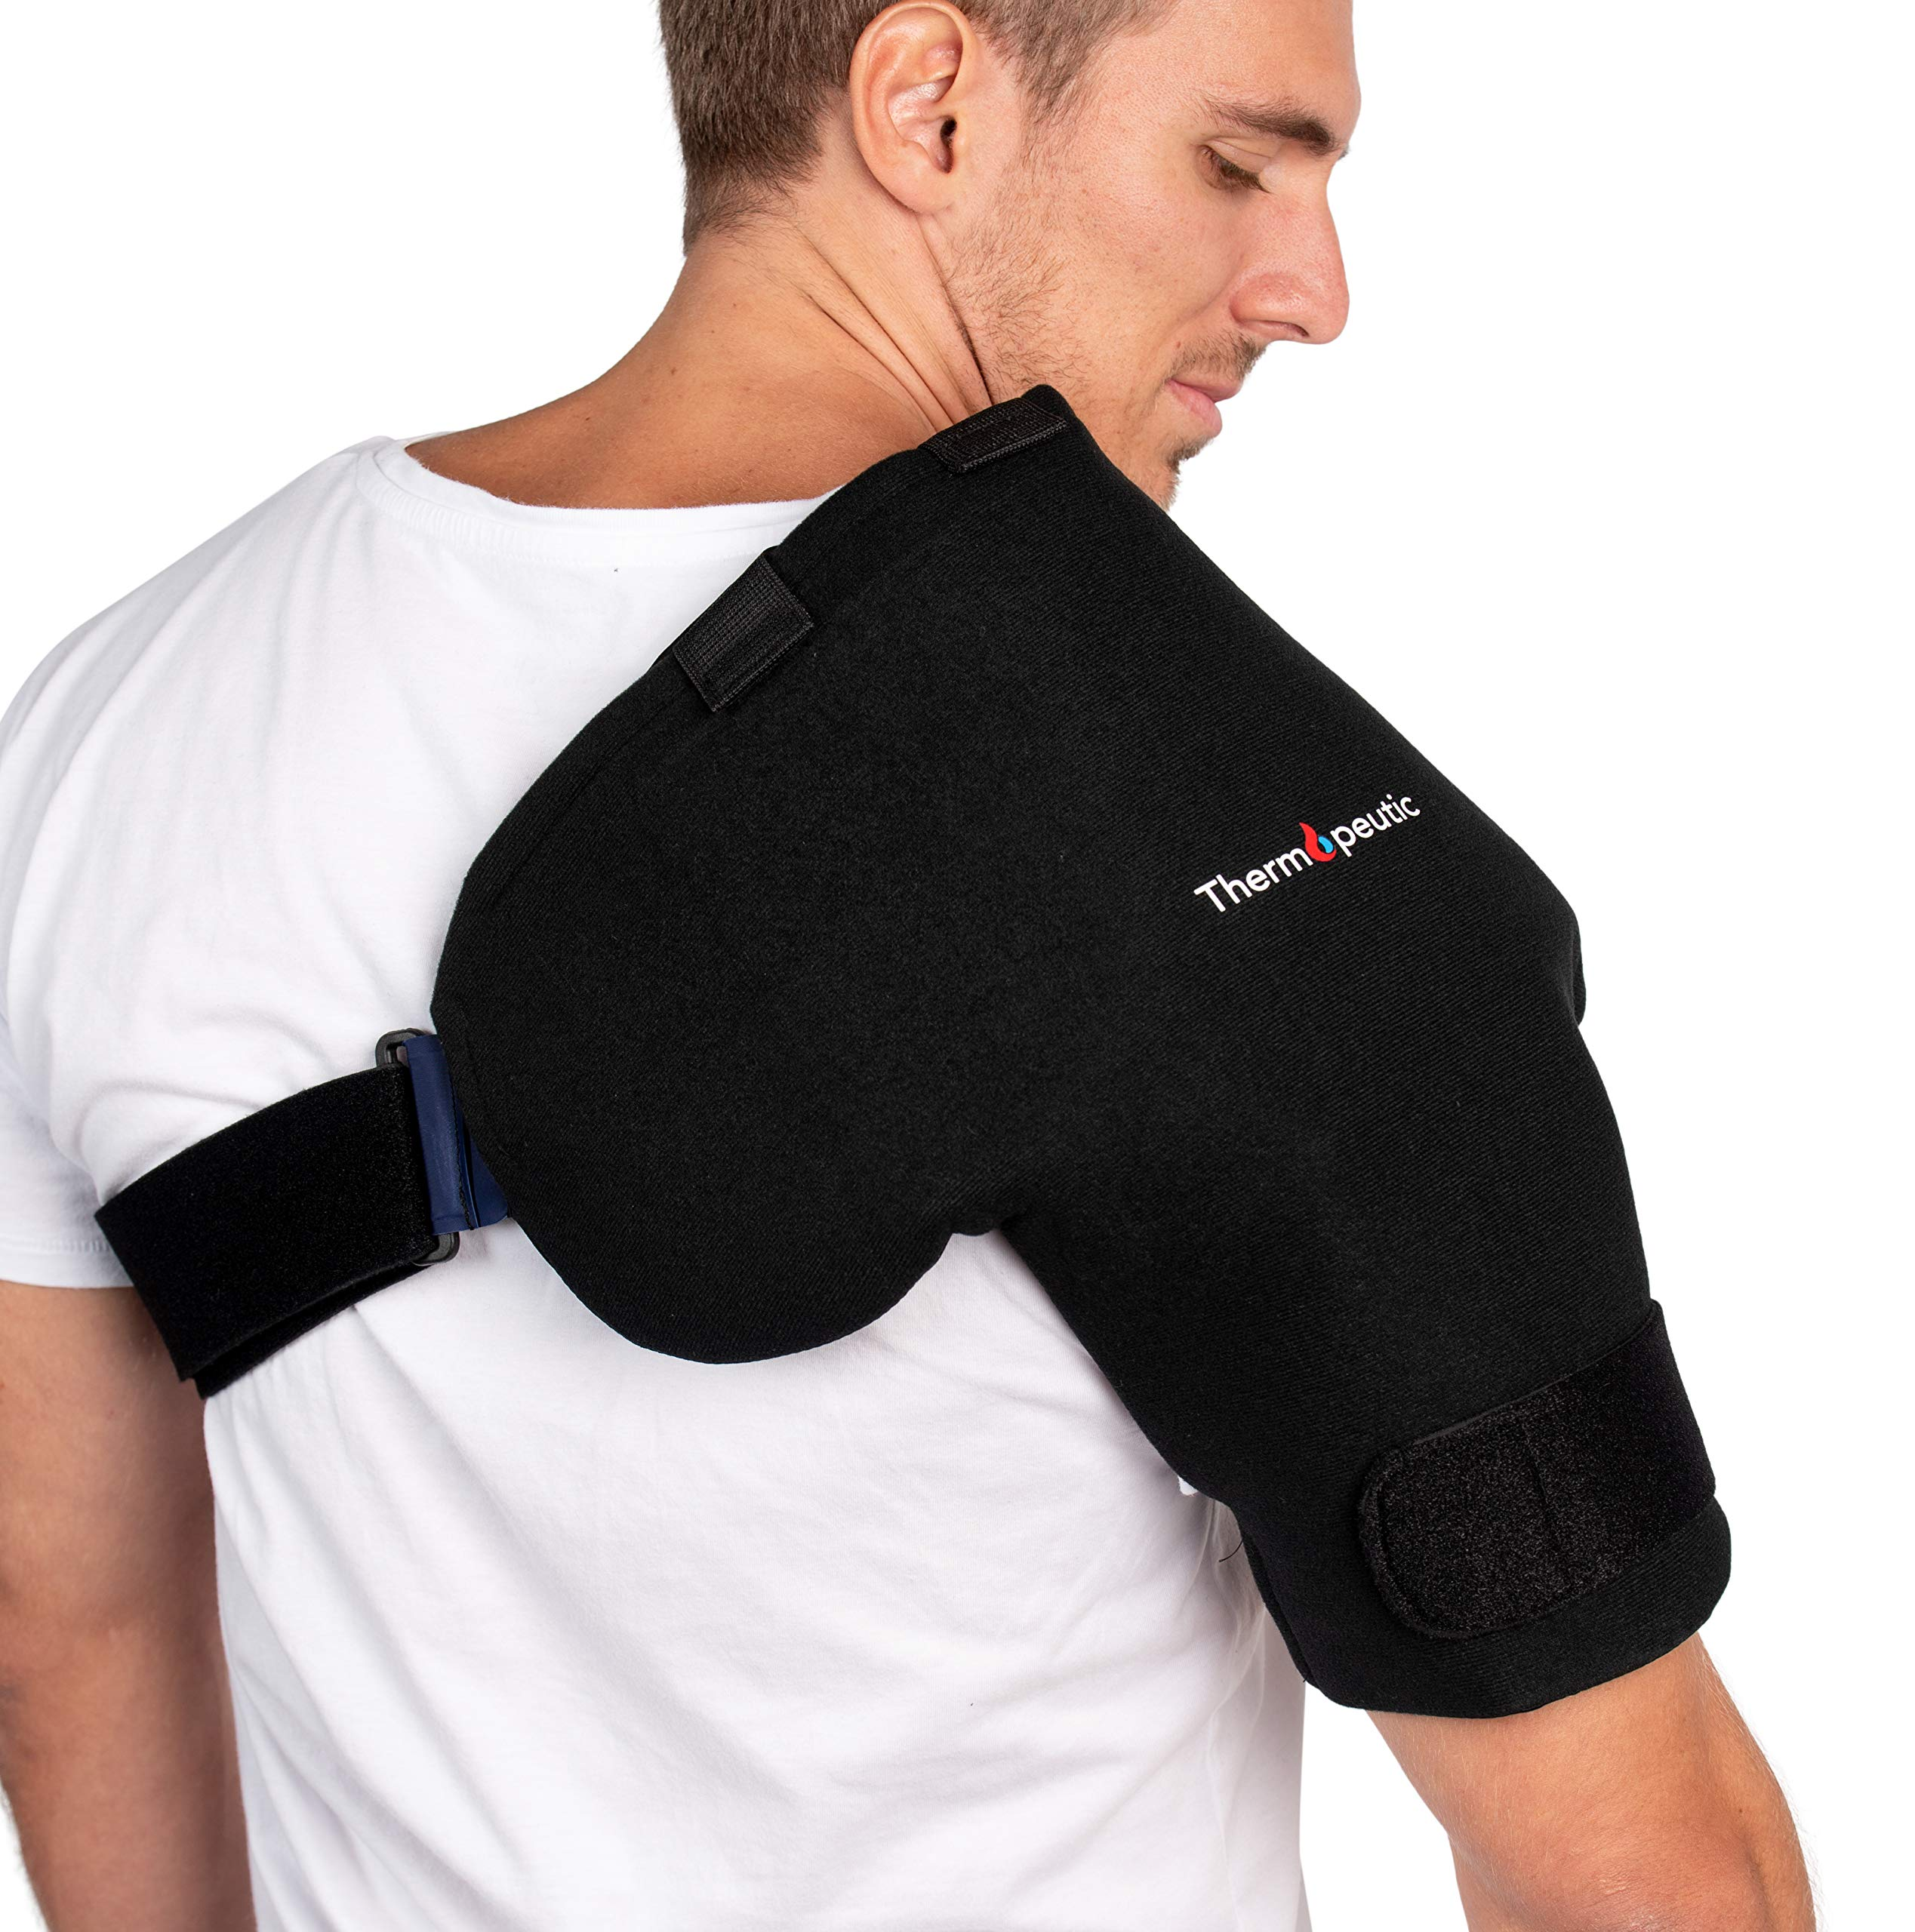 Thermopeutic Shoulder Compression Ice Hot/Cold Gel Wrap for Shoulder Injuries - Rotator Cuff, Rheumatoid Arthritis, Bursitis, Osteoarthritis,Tendinitis, AC Joint Pain Relief